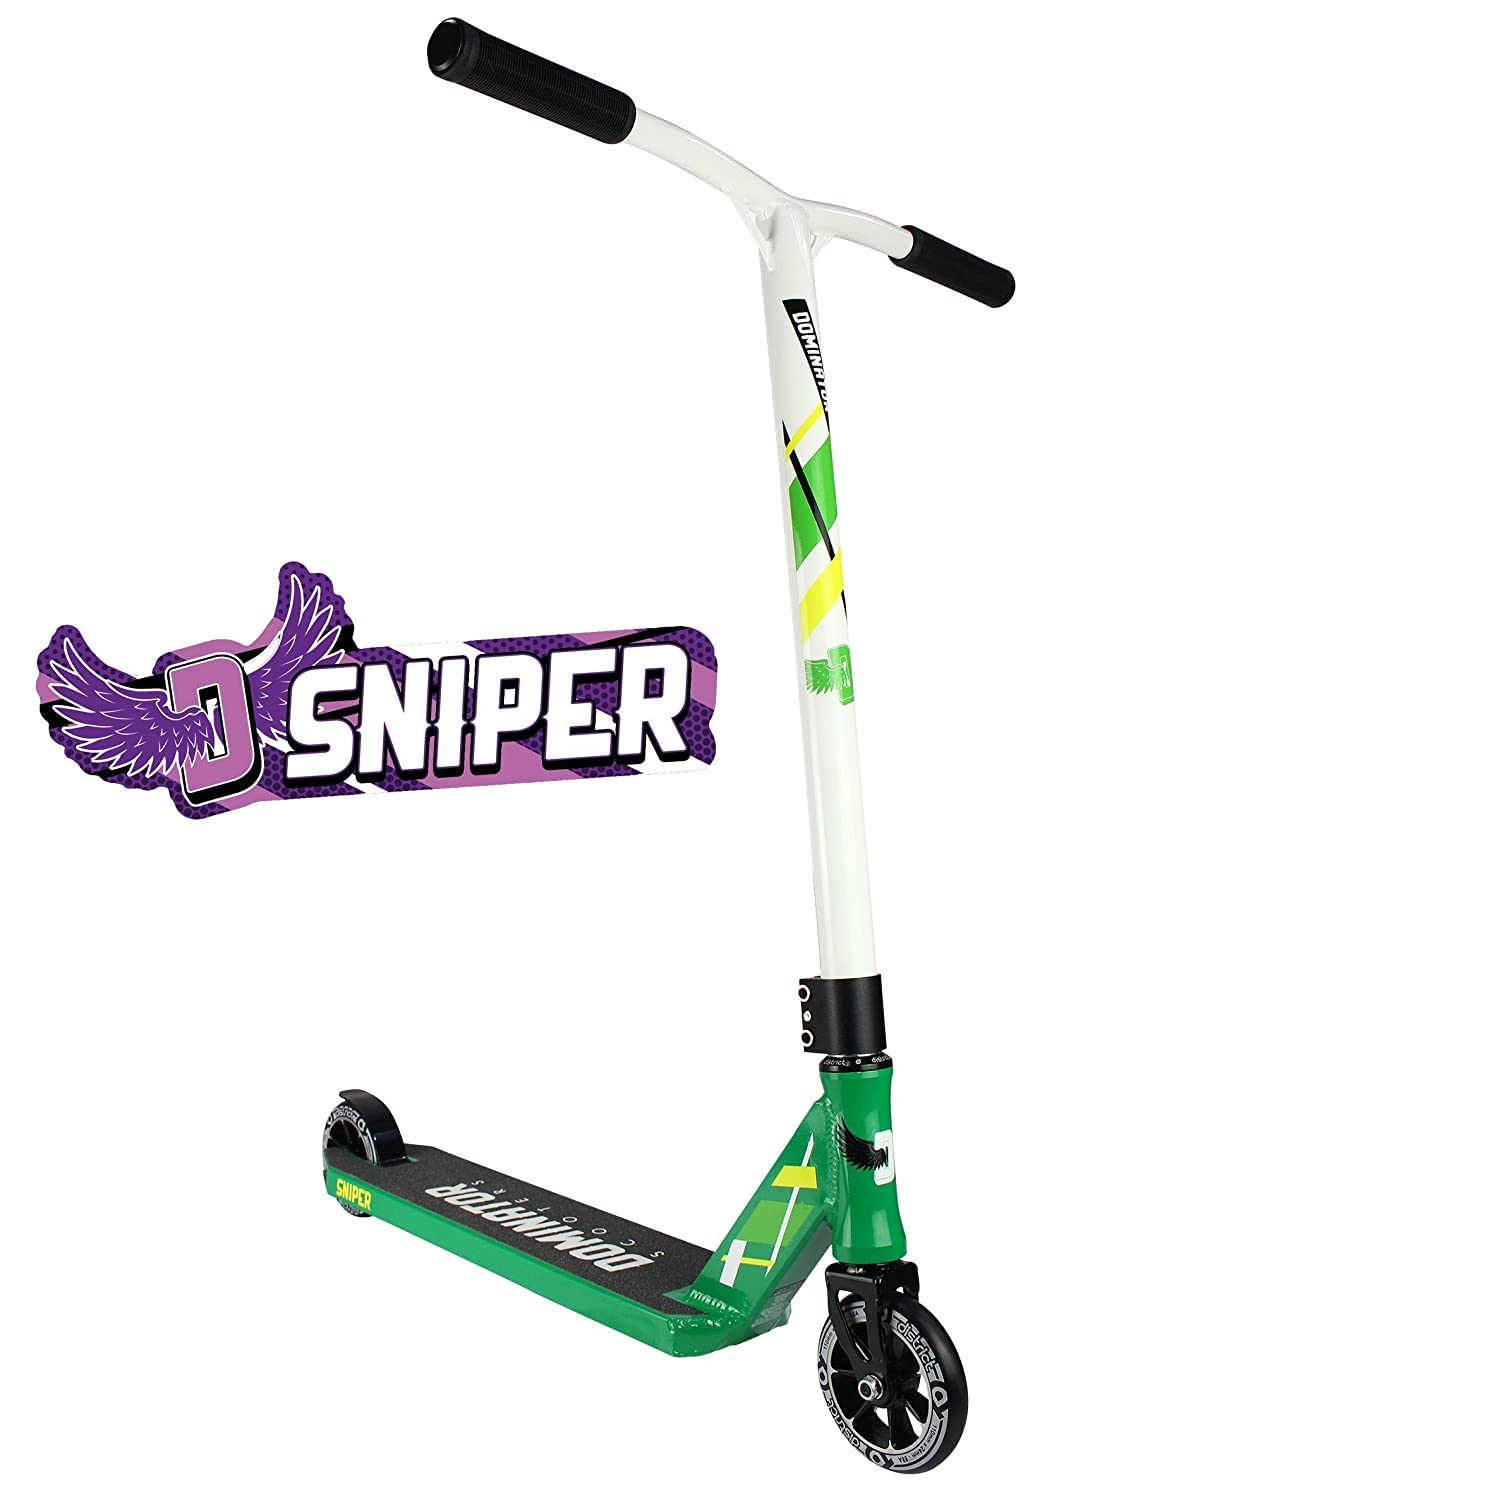 Dominator Sniper Pro Scooter (Green/White) Dominator Scooters